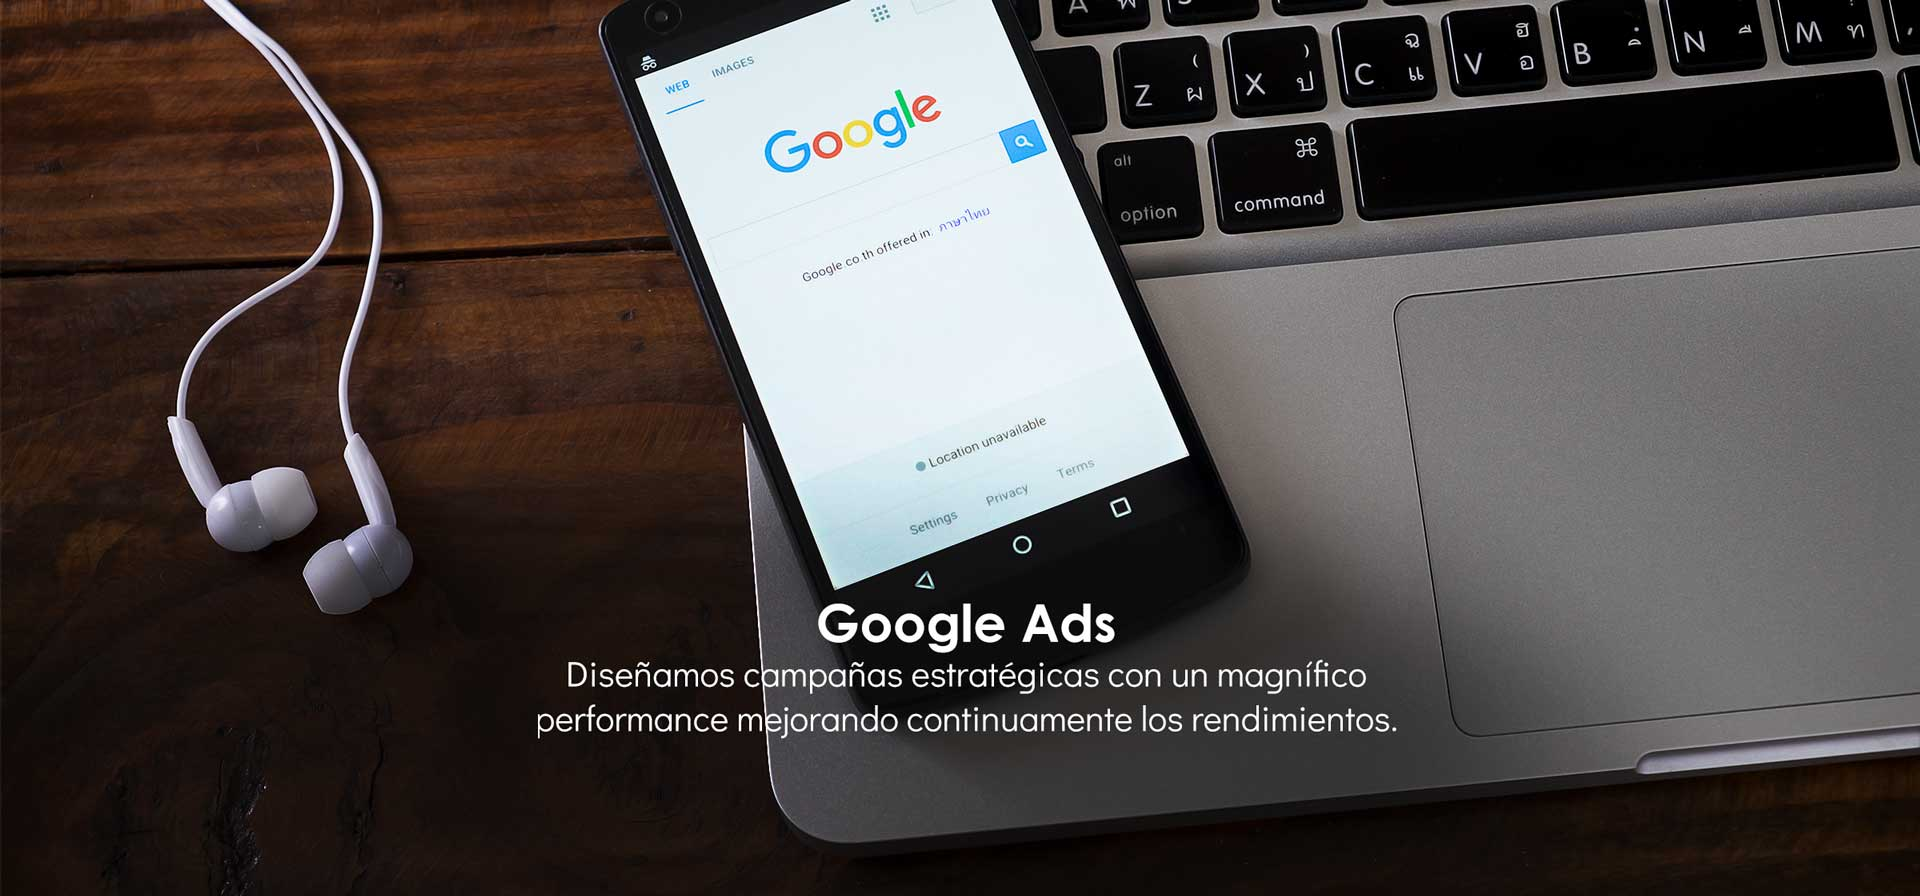 Agencia de Google Adwords